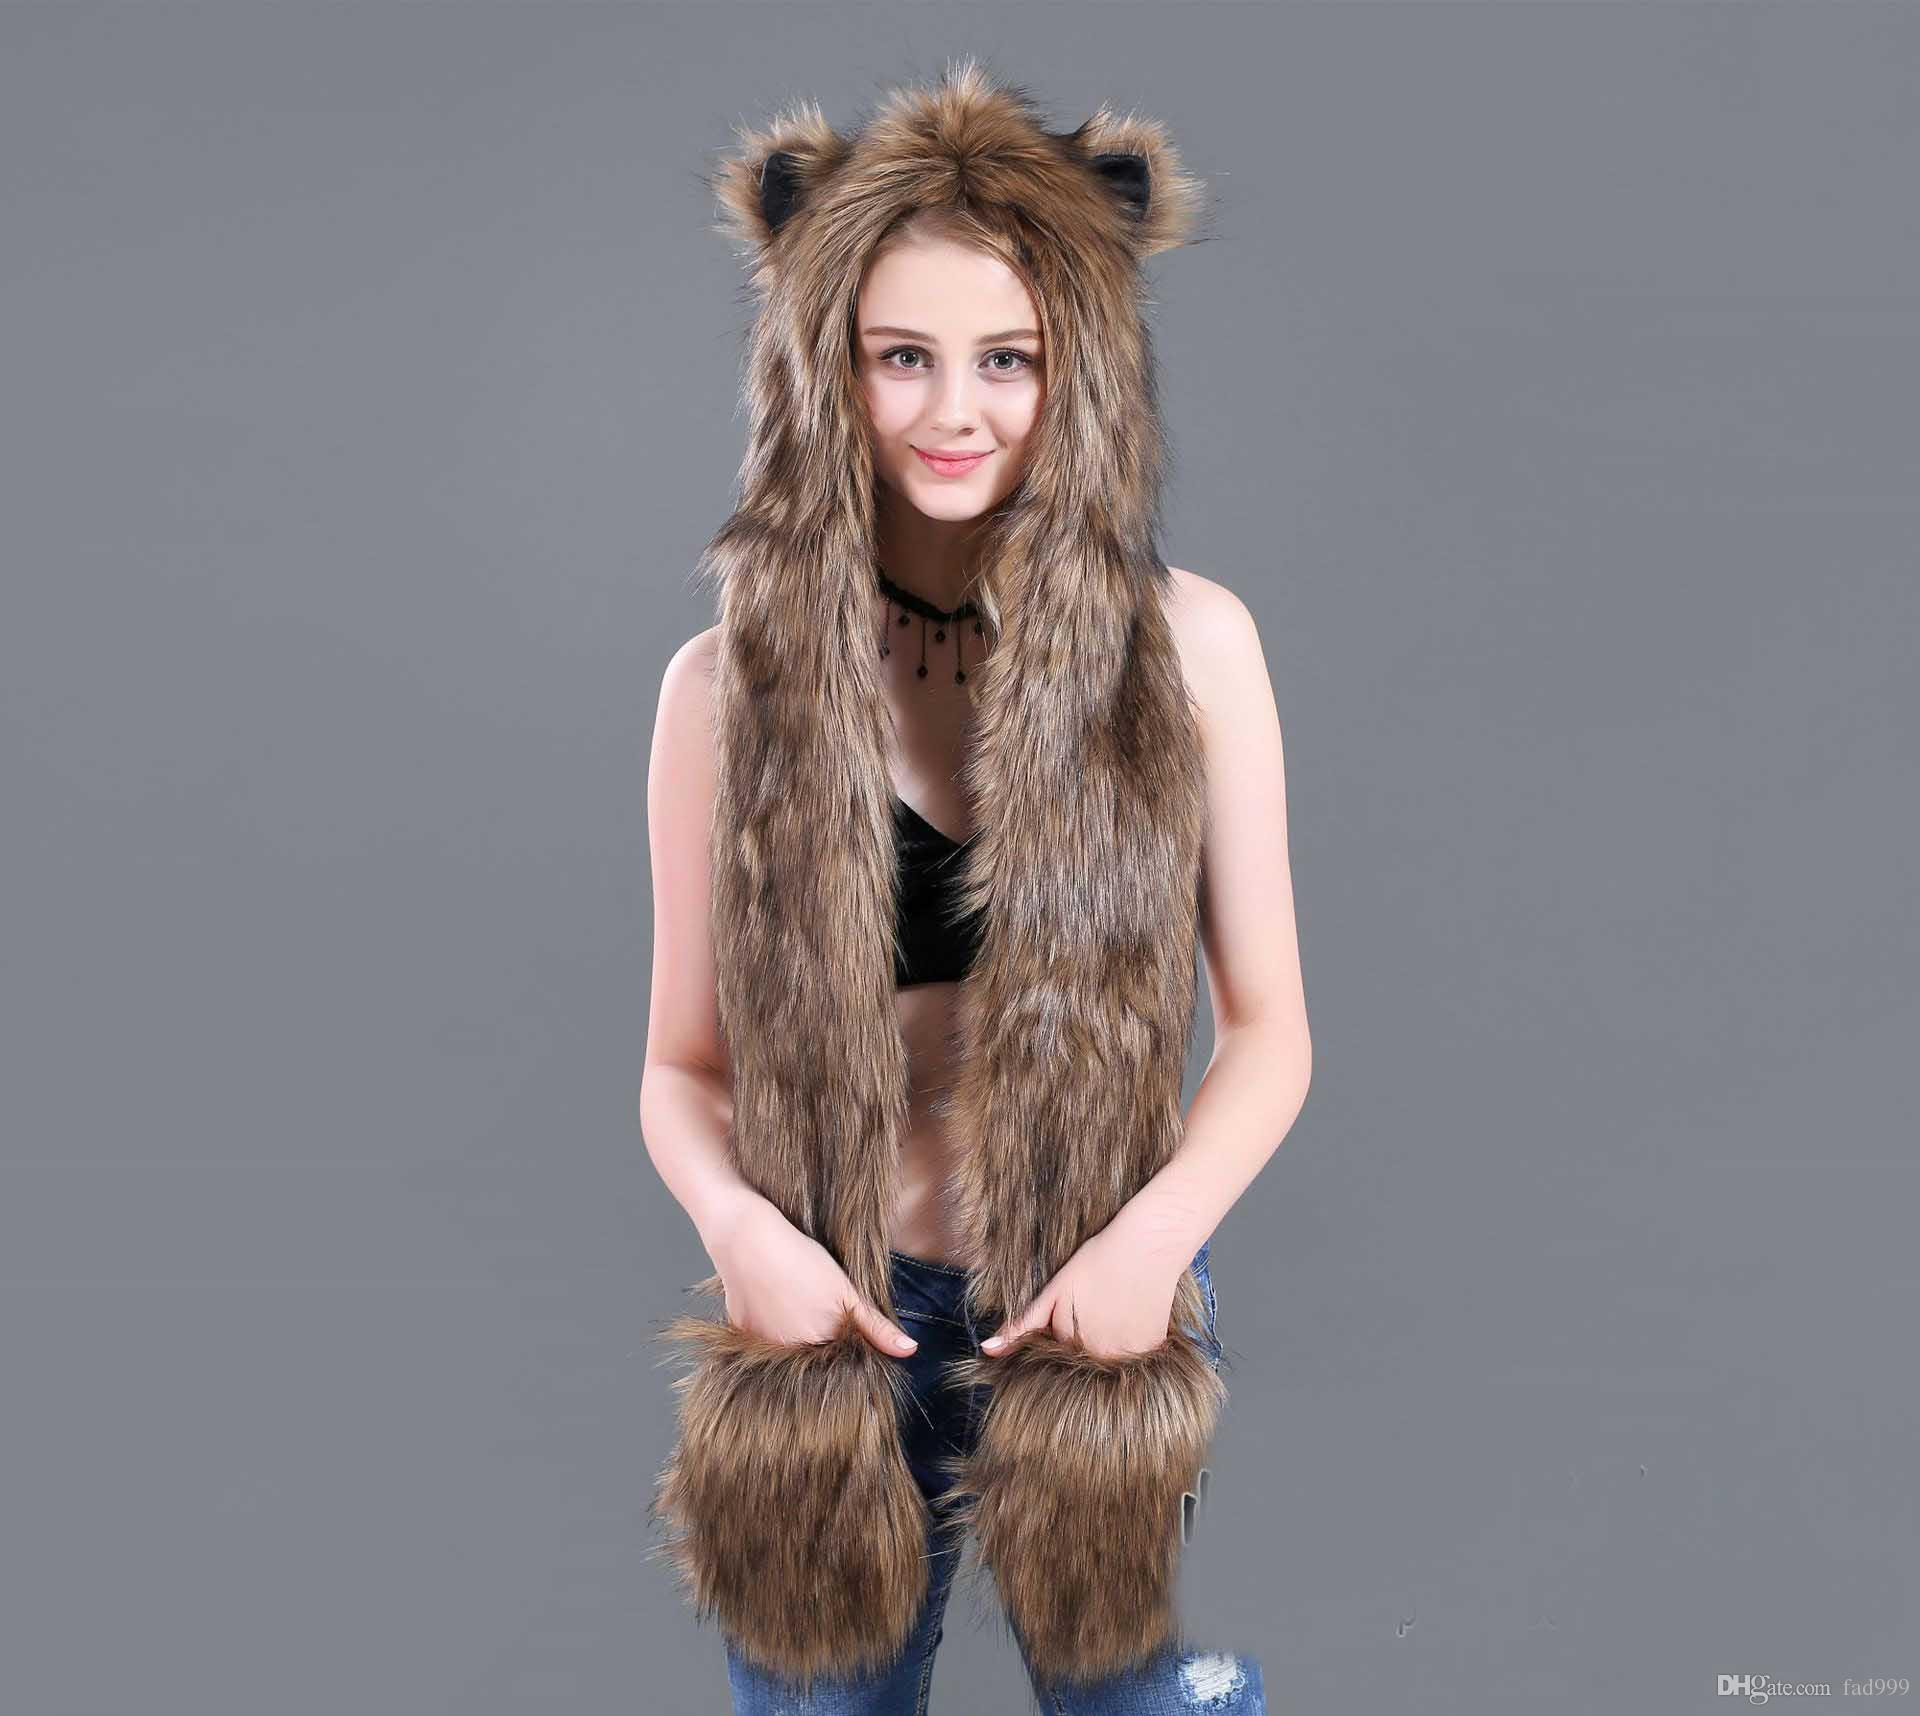 75fcfab8e2d229 2019 2018 Hot Trend Fashion Winter Imitation Fur Hat Fur Cap Cartoon Animal  Hat Scarf Gloves One From Fad999, $16.89 | DHgate.Com